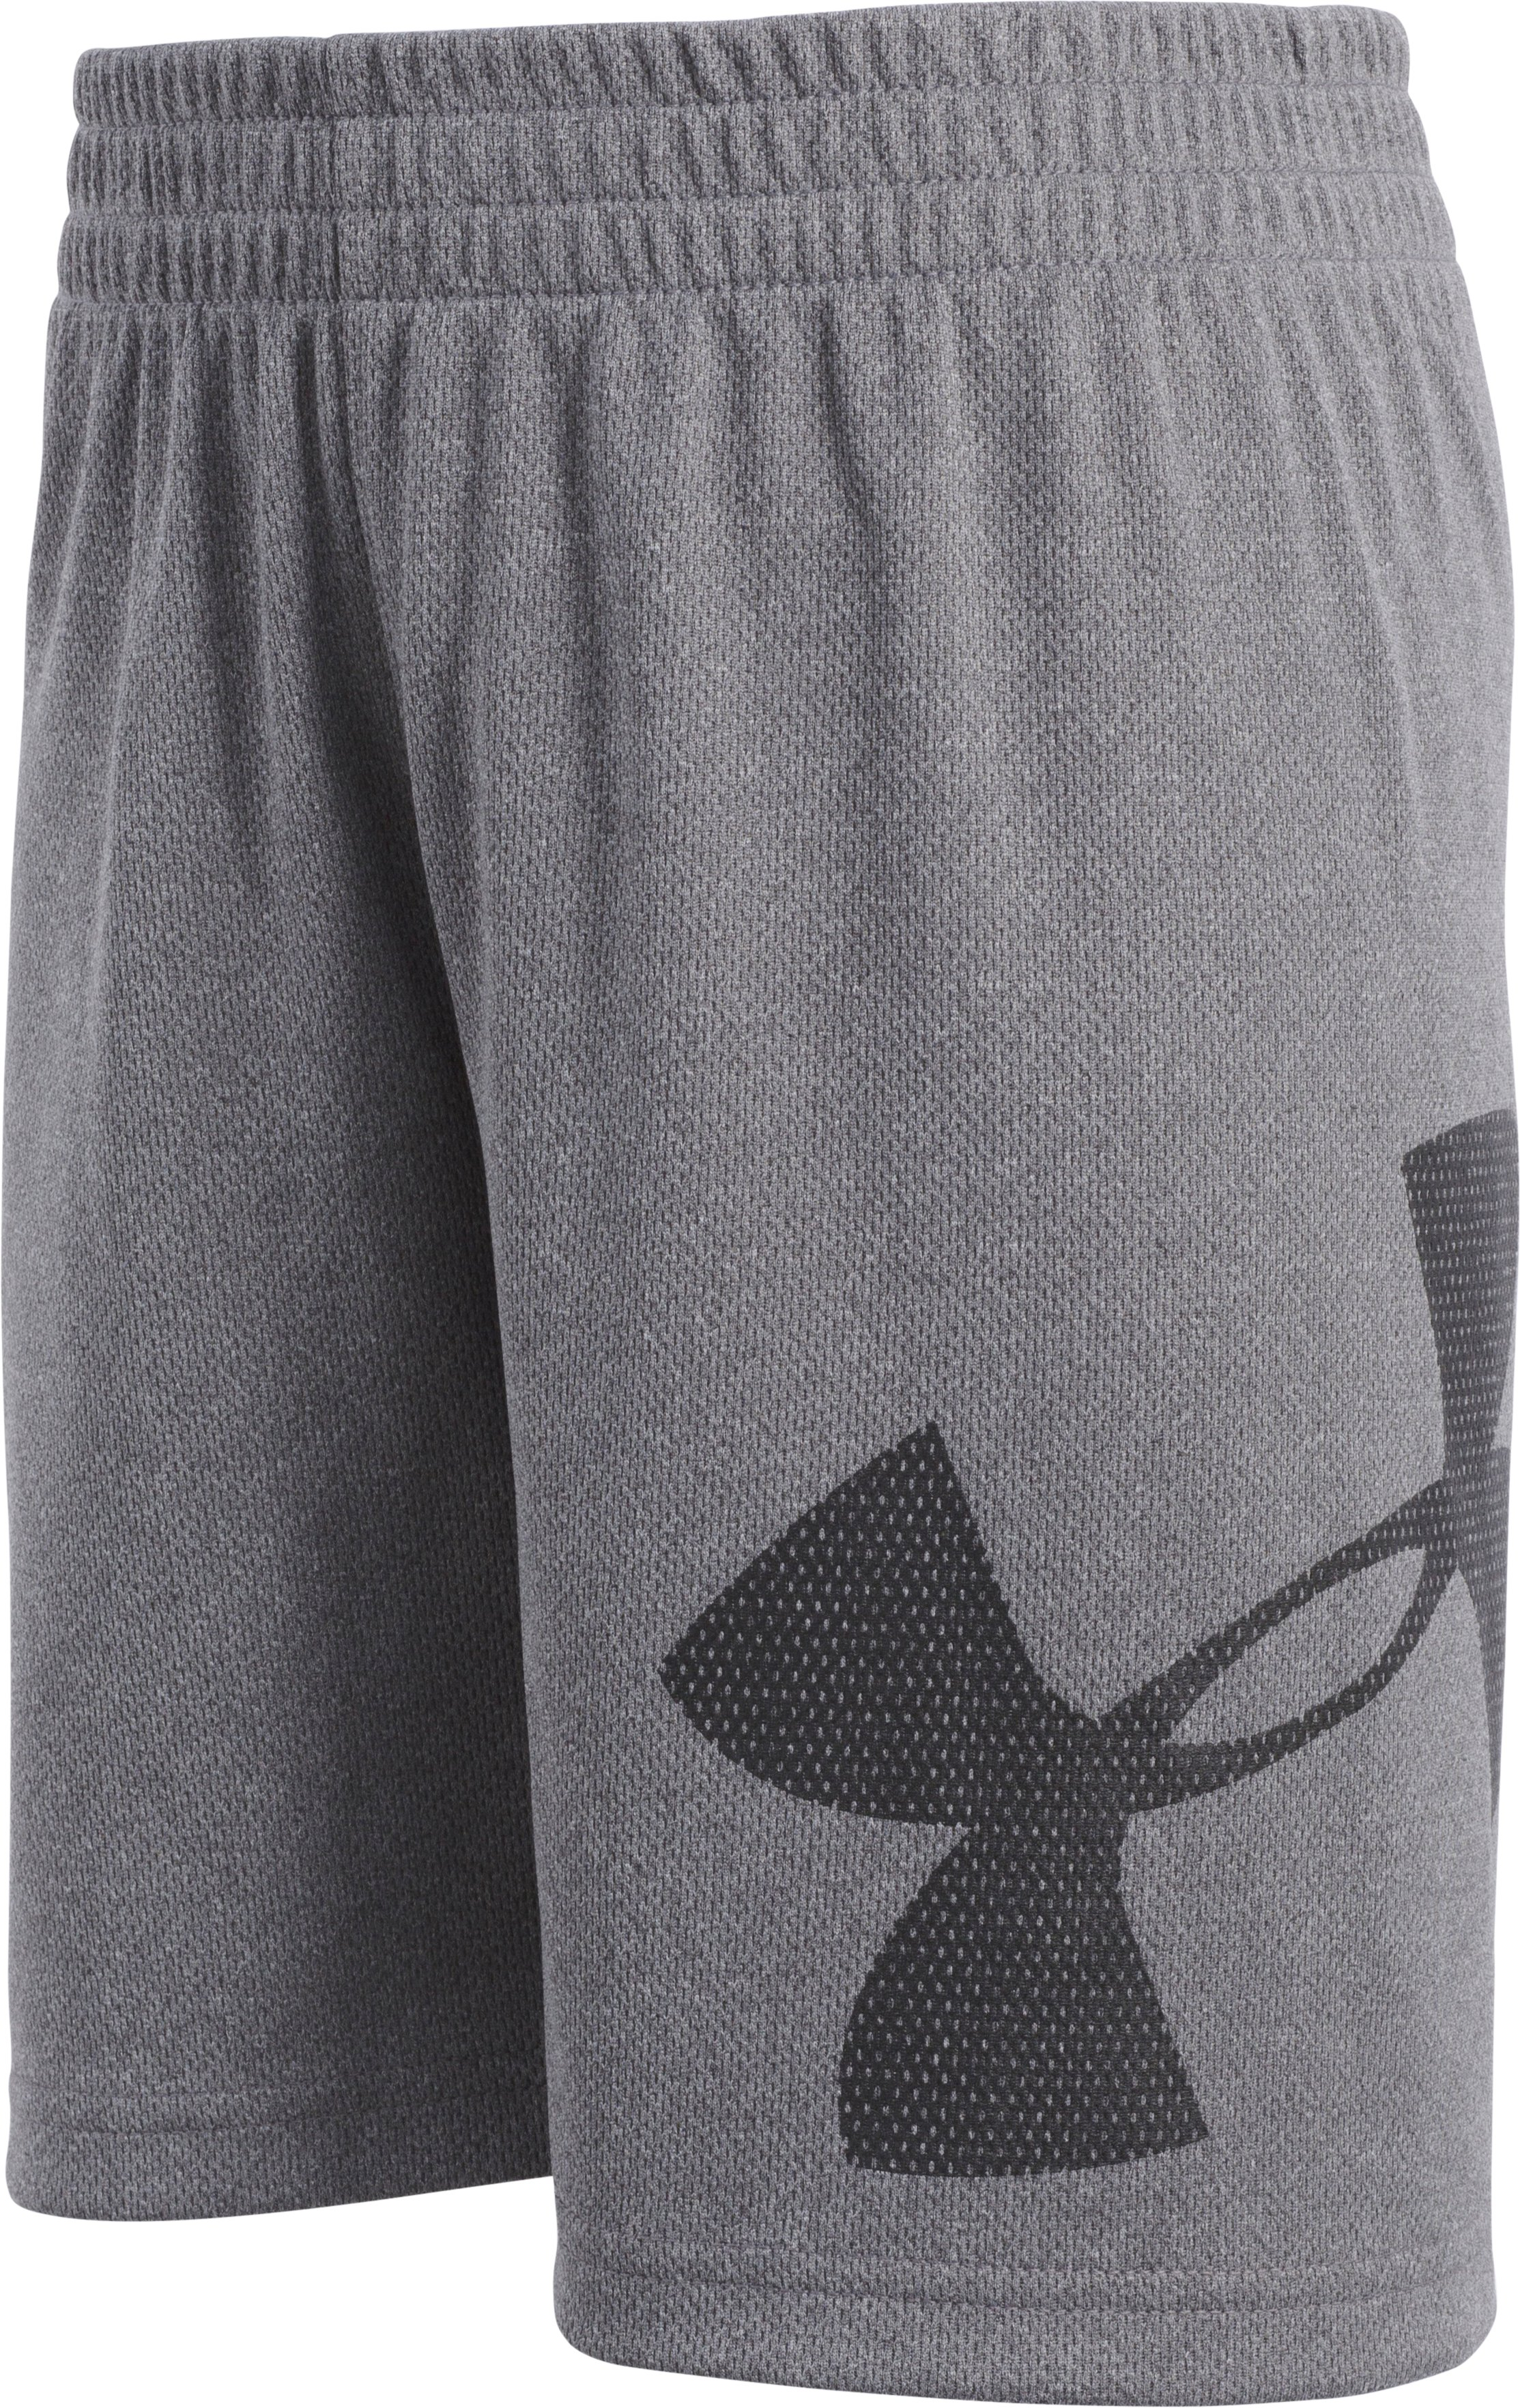 Boys' Pre-School UA Zoom Striker Shorts, Charcoal Medium Heather